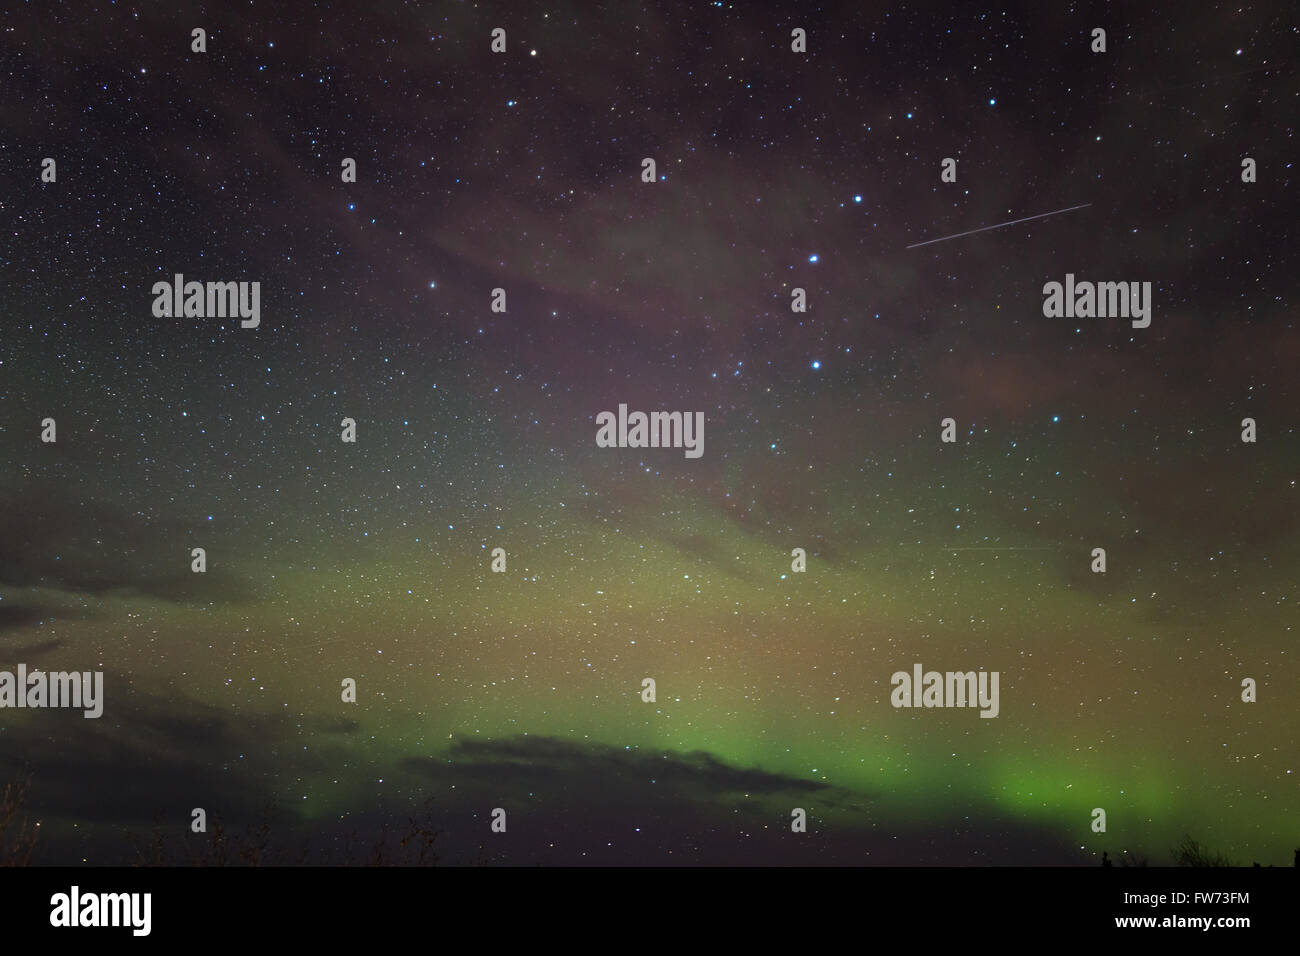 Satellites, and stars, and the northern lights (aurora borealis) put on a show in the sky over Fairbanks, Alaska - Stock Image